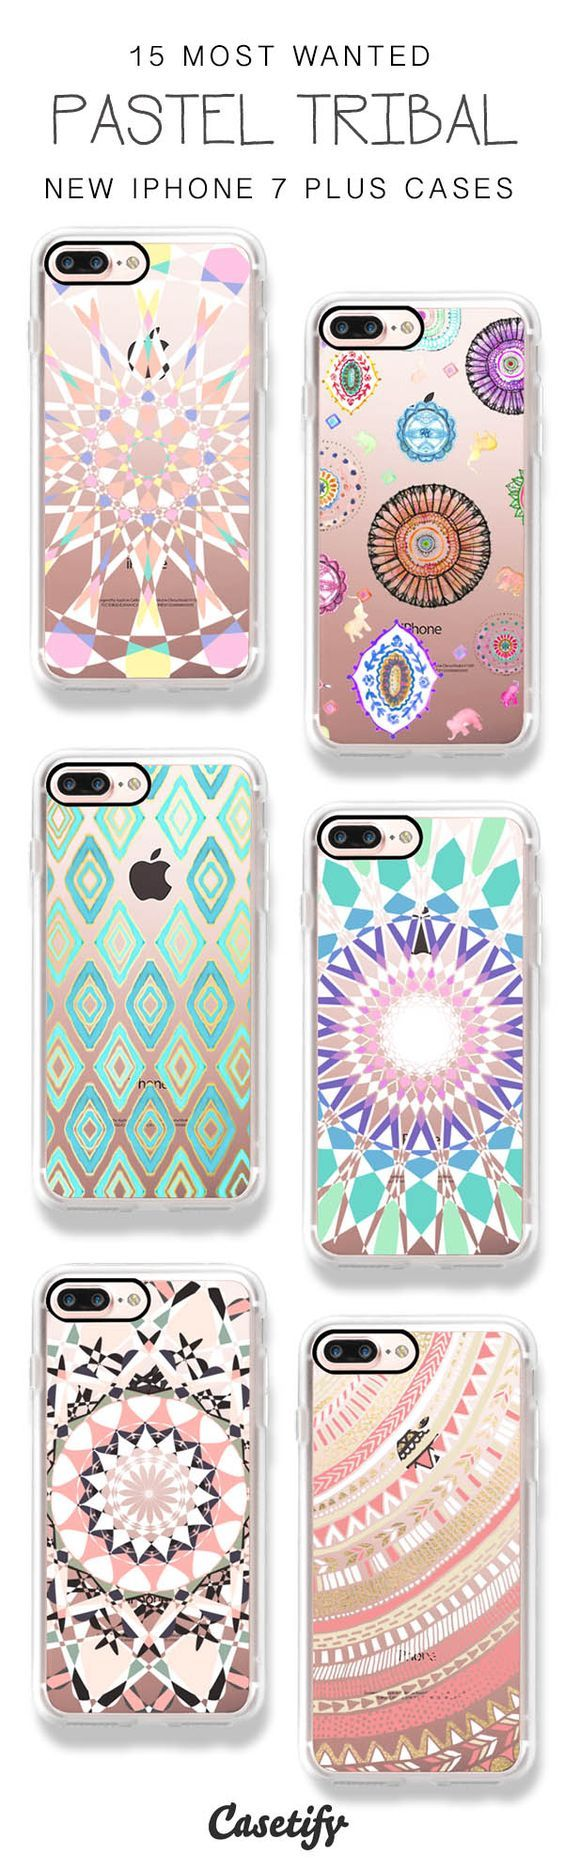 Cell Phone Cases - 15 Most Wanted Boho Tribal iPhone 7 Cases - Welcome to the Cell Phone Cases Store, where you'll find great prices on a wide range of different cases for your cell phone (IPhone - Samsung)